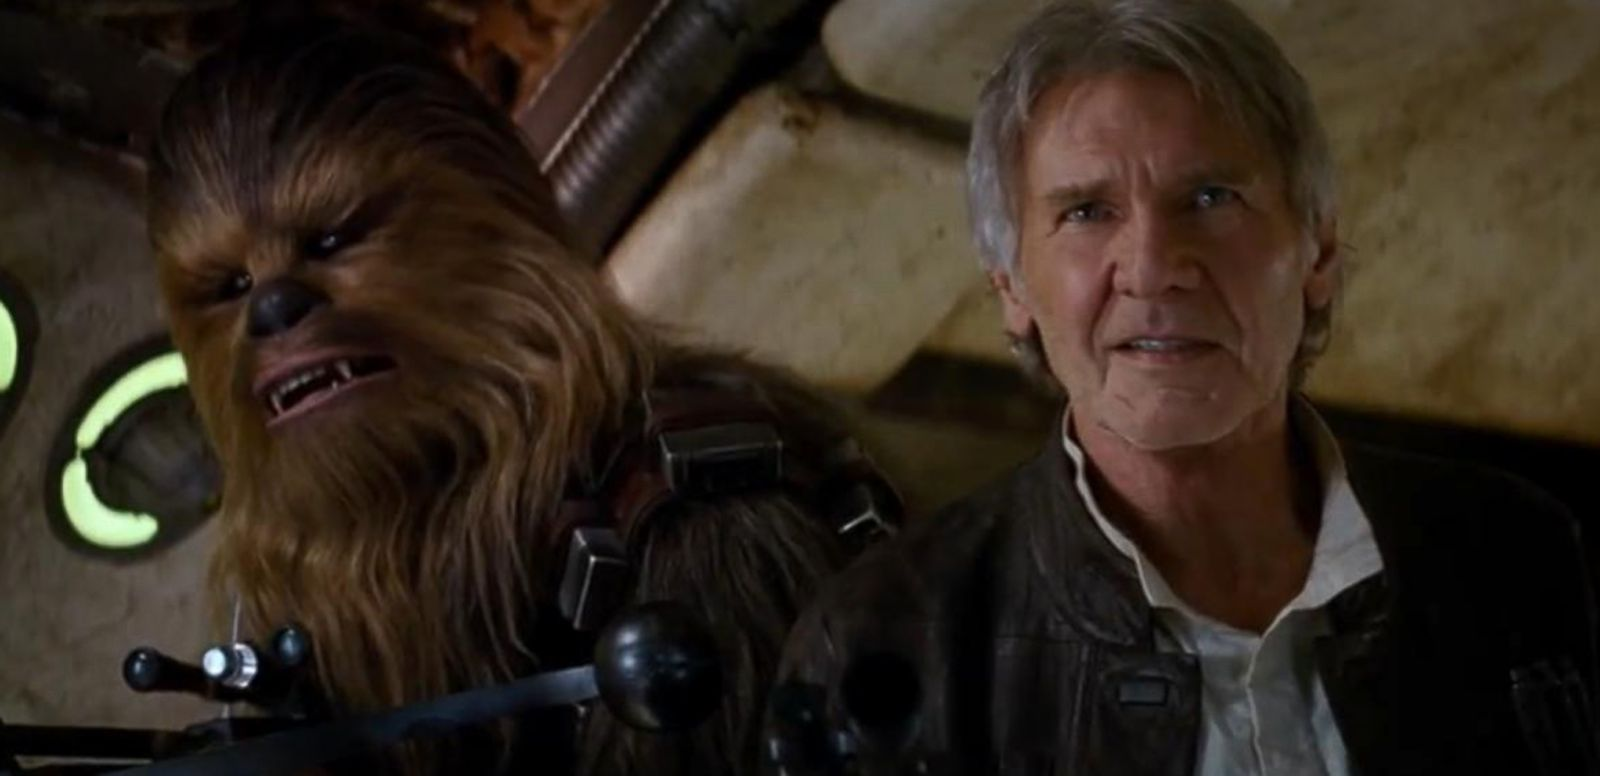 'Star Wars: The Force Awakens' Trailer Reveals New Secrets